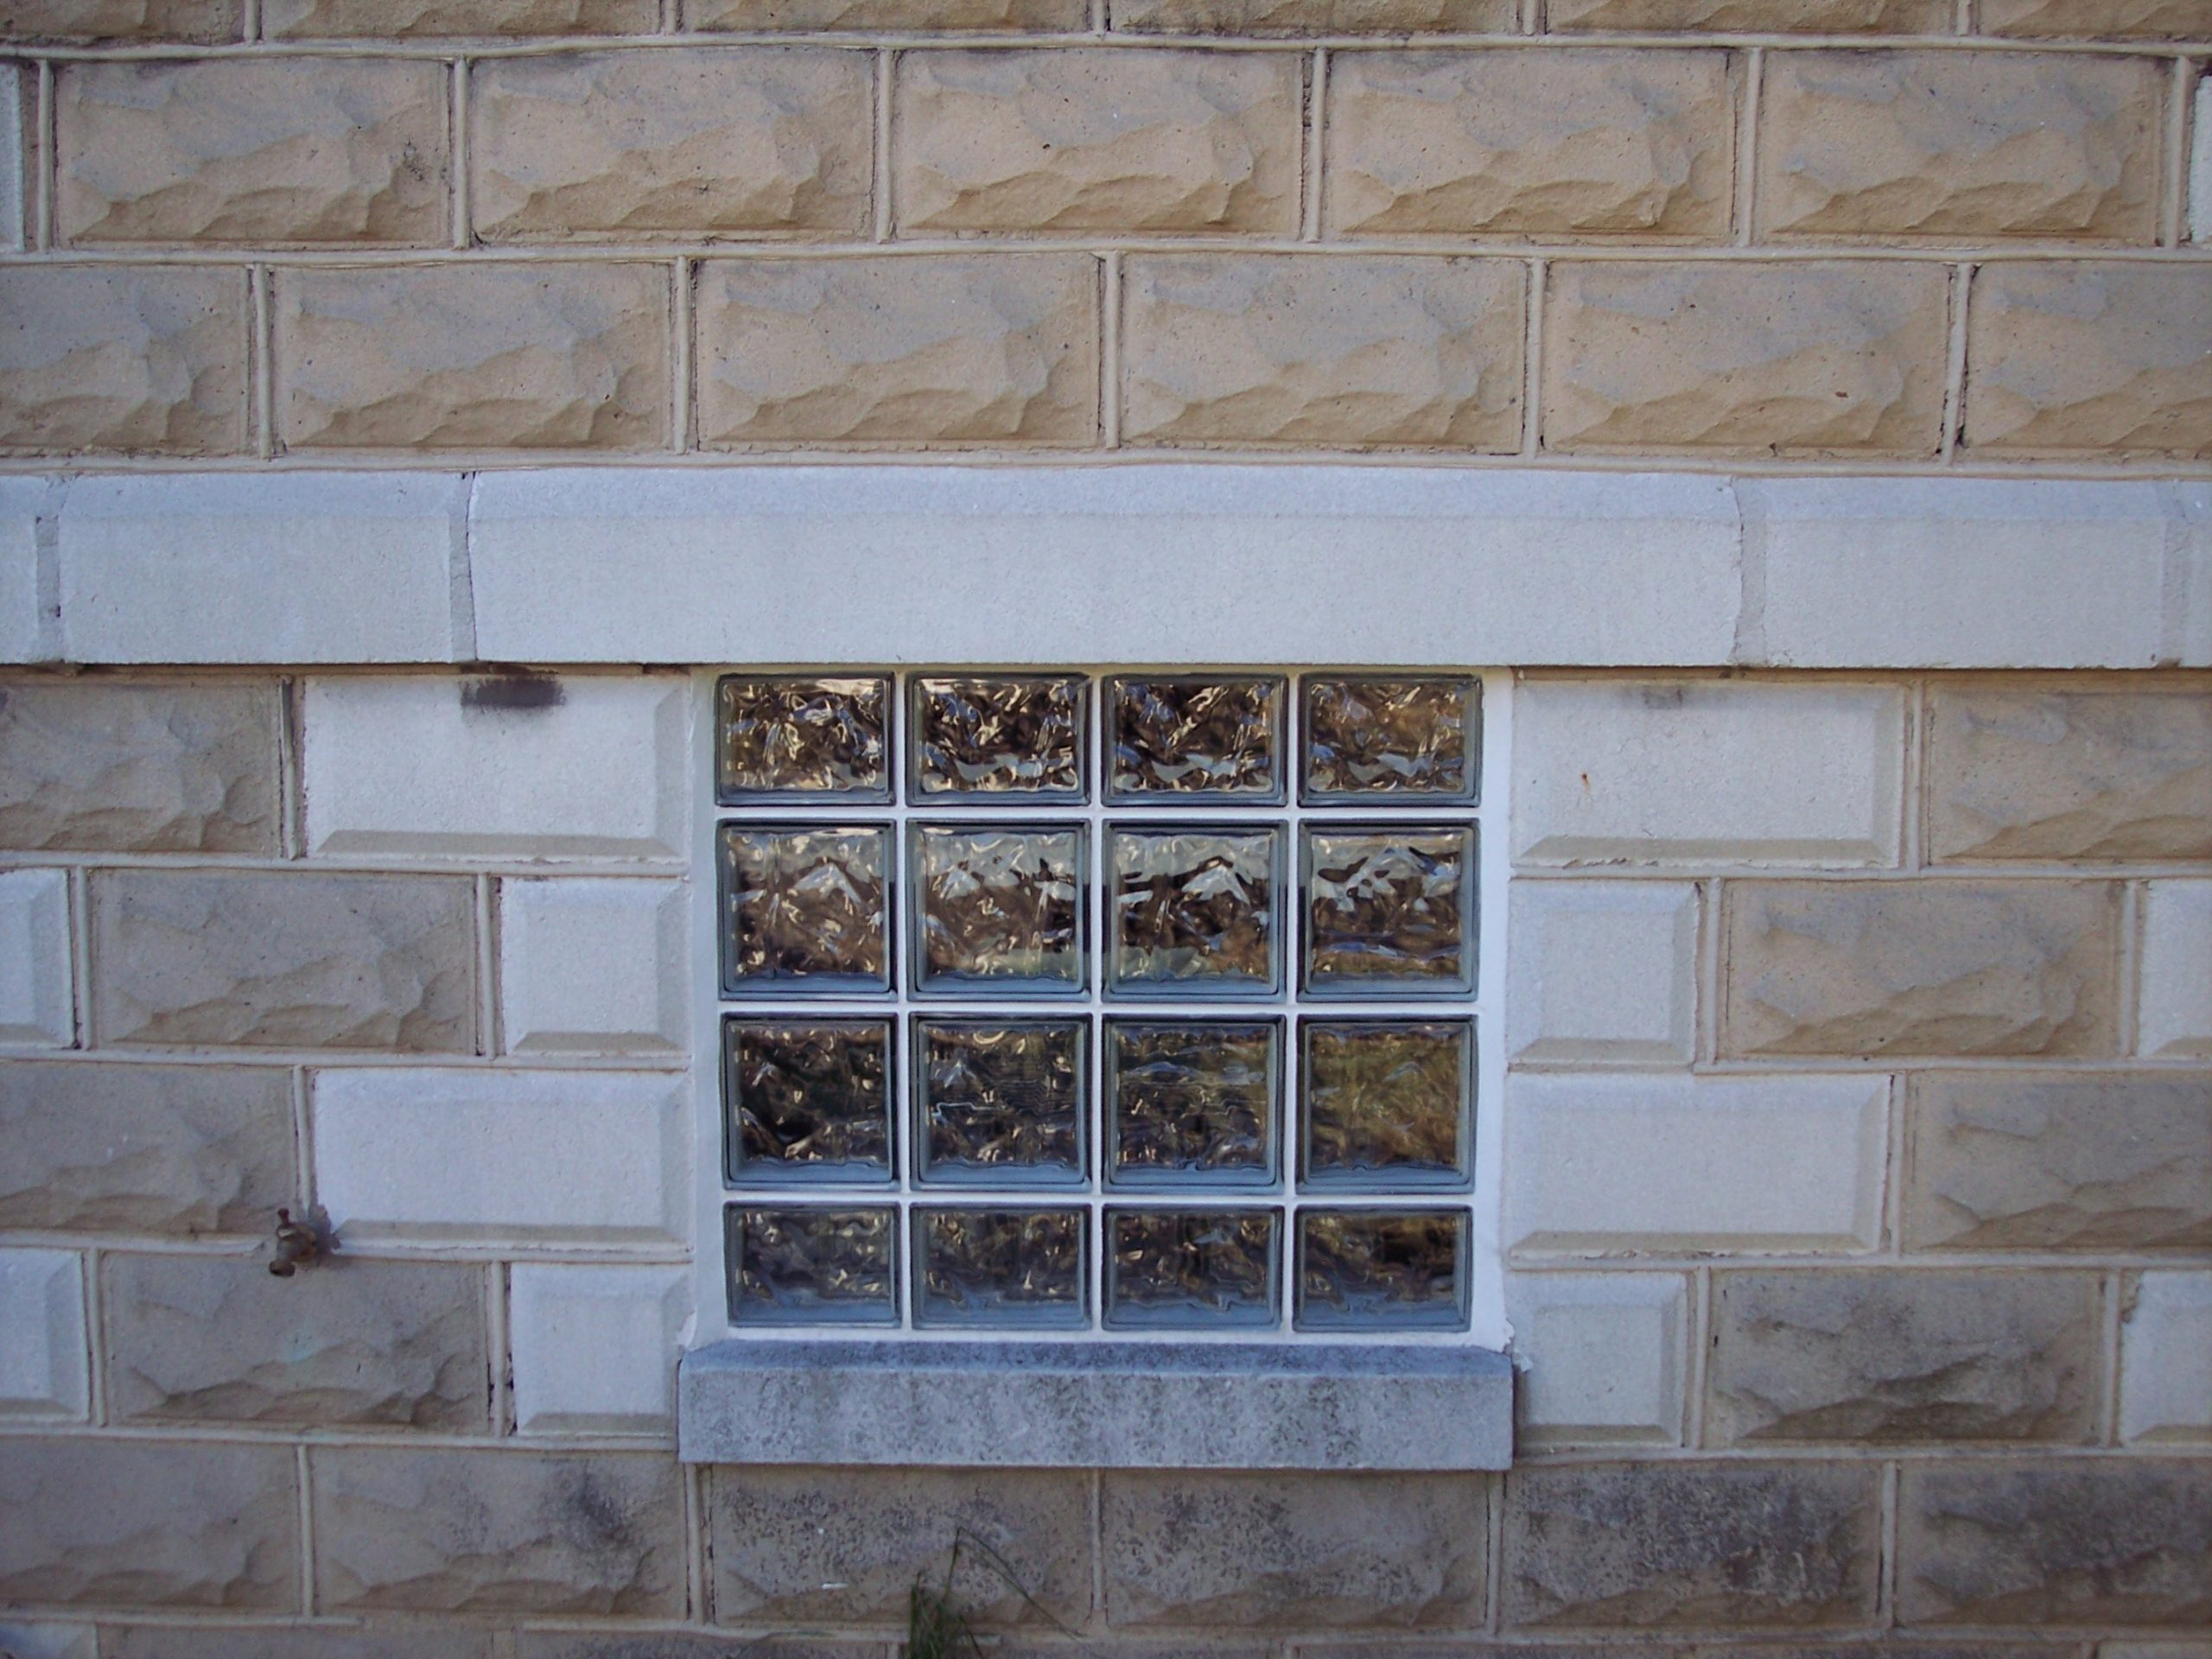 completed glass block window